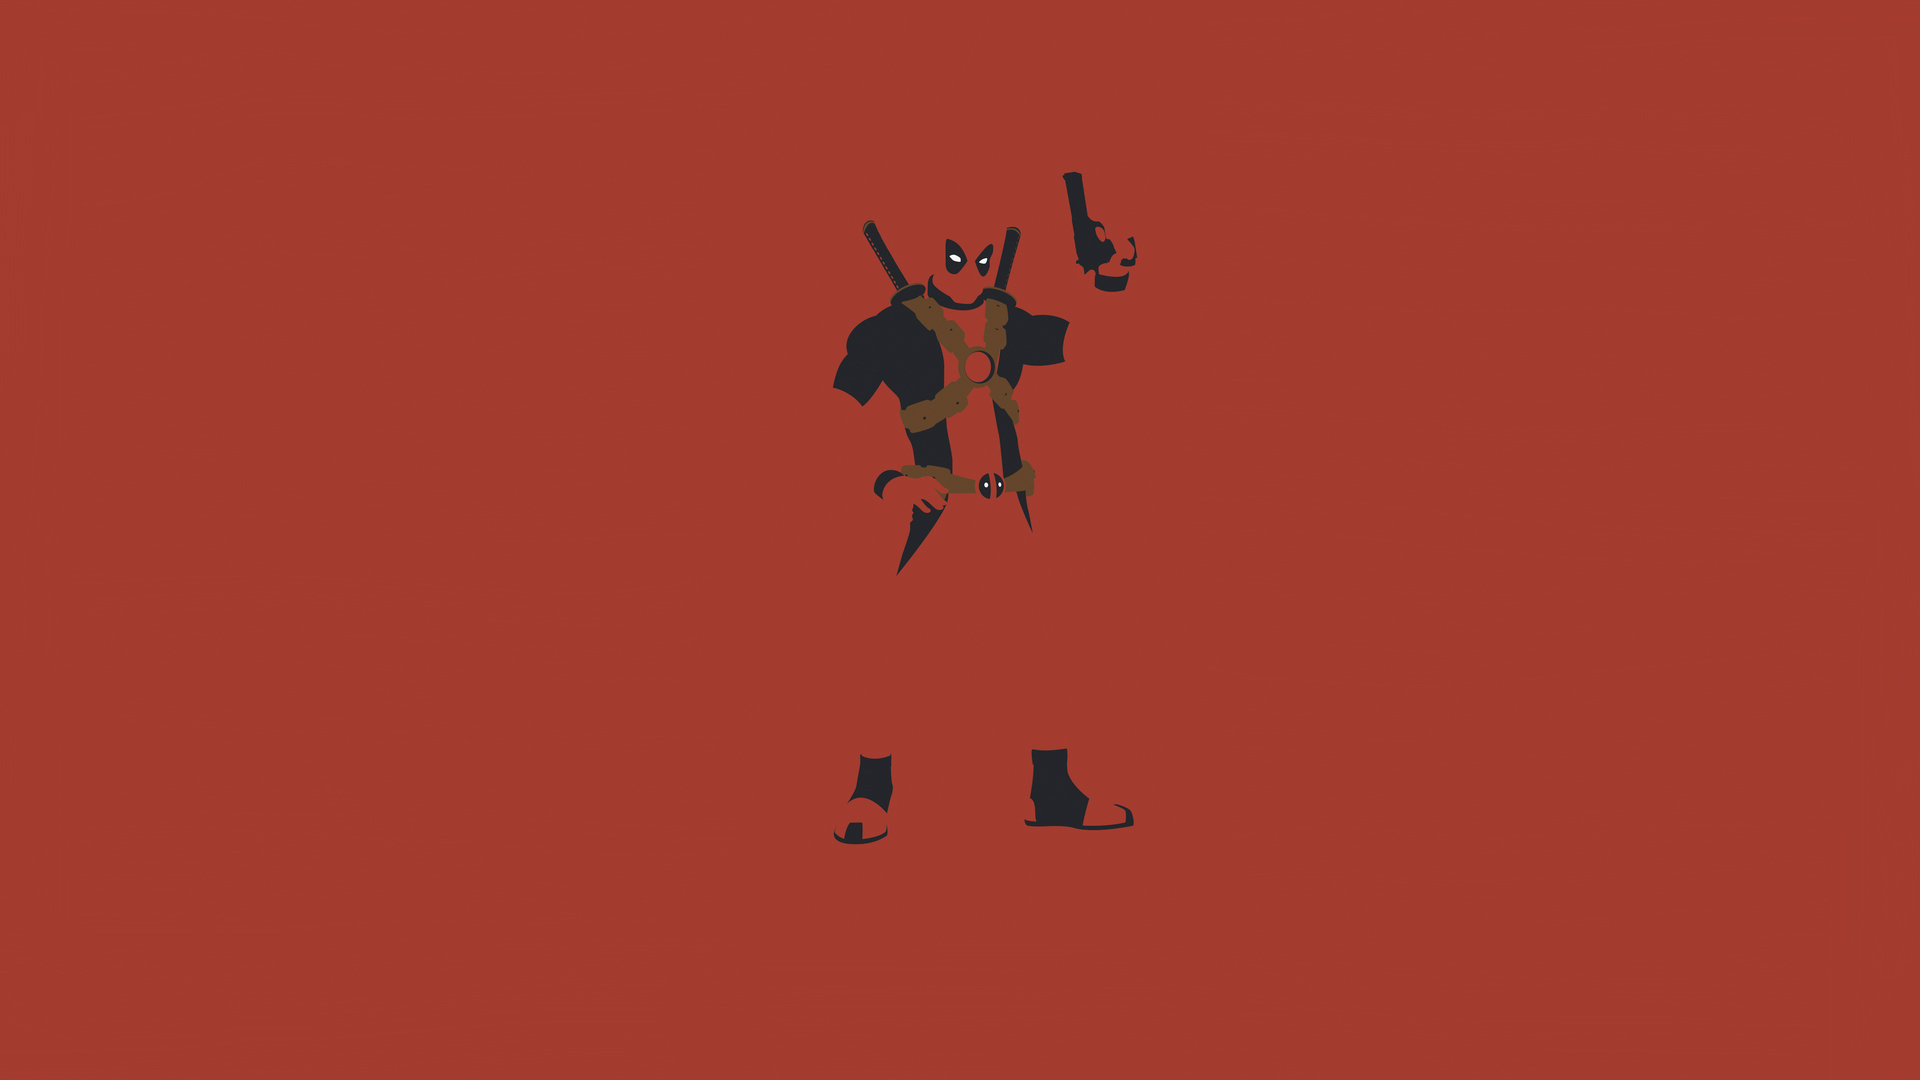 deadpool-wallpaper-full-hd-wallpaper